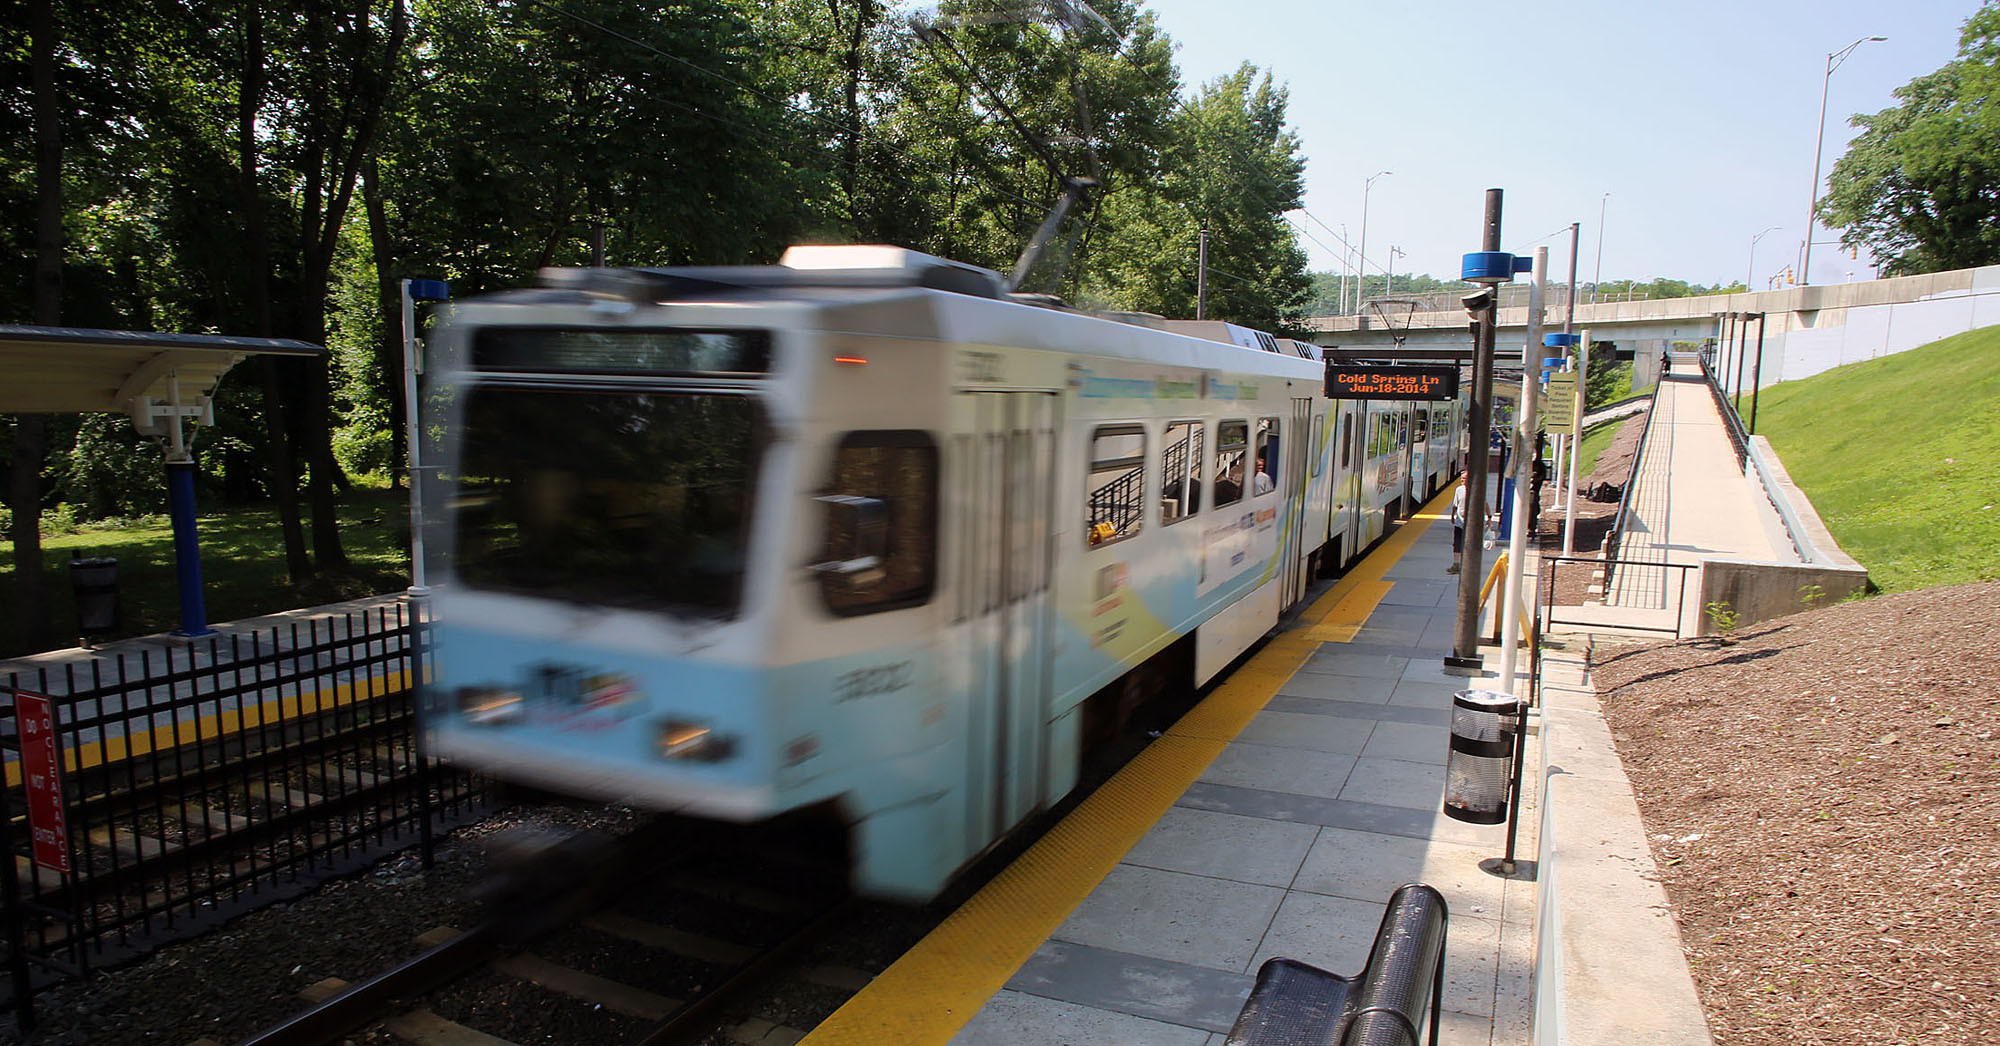 MTA to conduct fare pliance sweeps on light rail system through